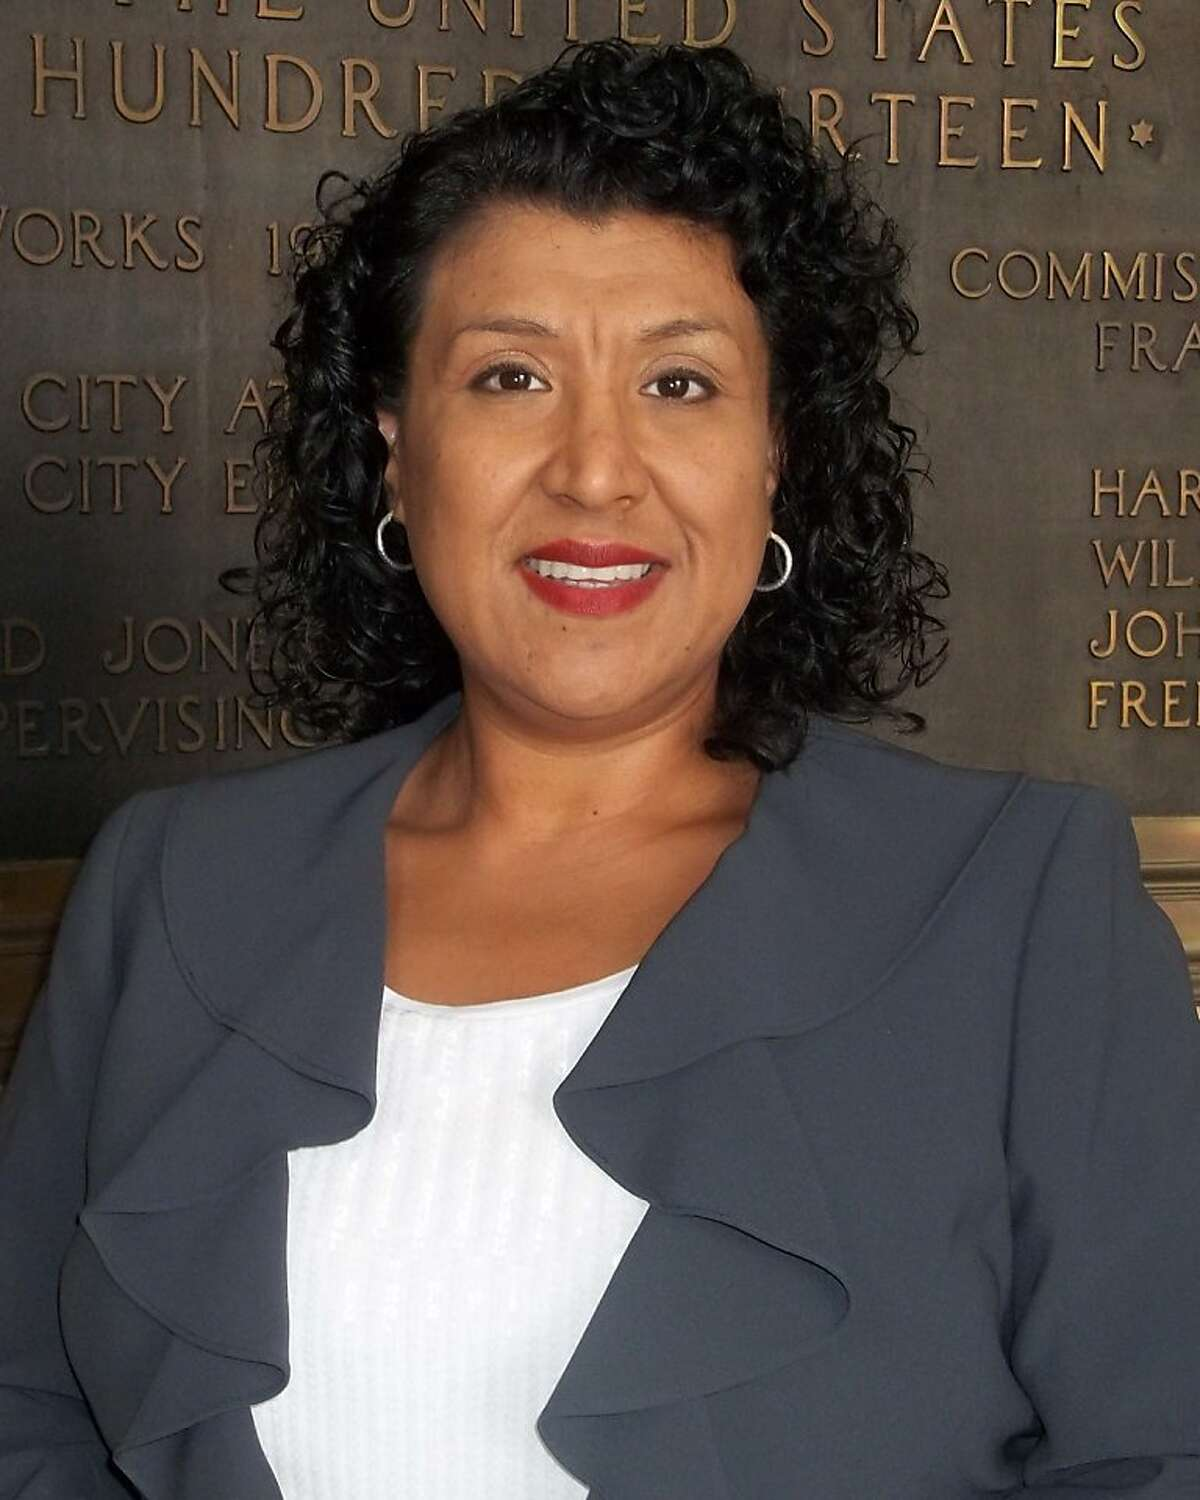 Deanna Santana will be moving from San Jose, where she is the Deputy City Manager, to Oakland as the new City Administrator as of August 1.